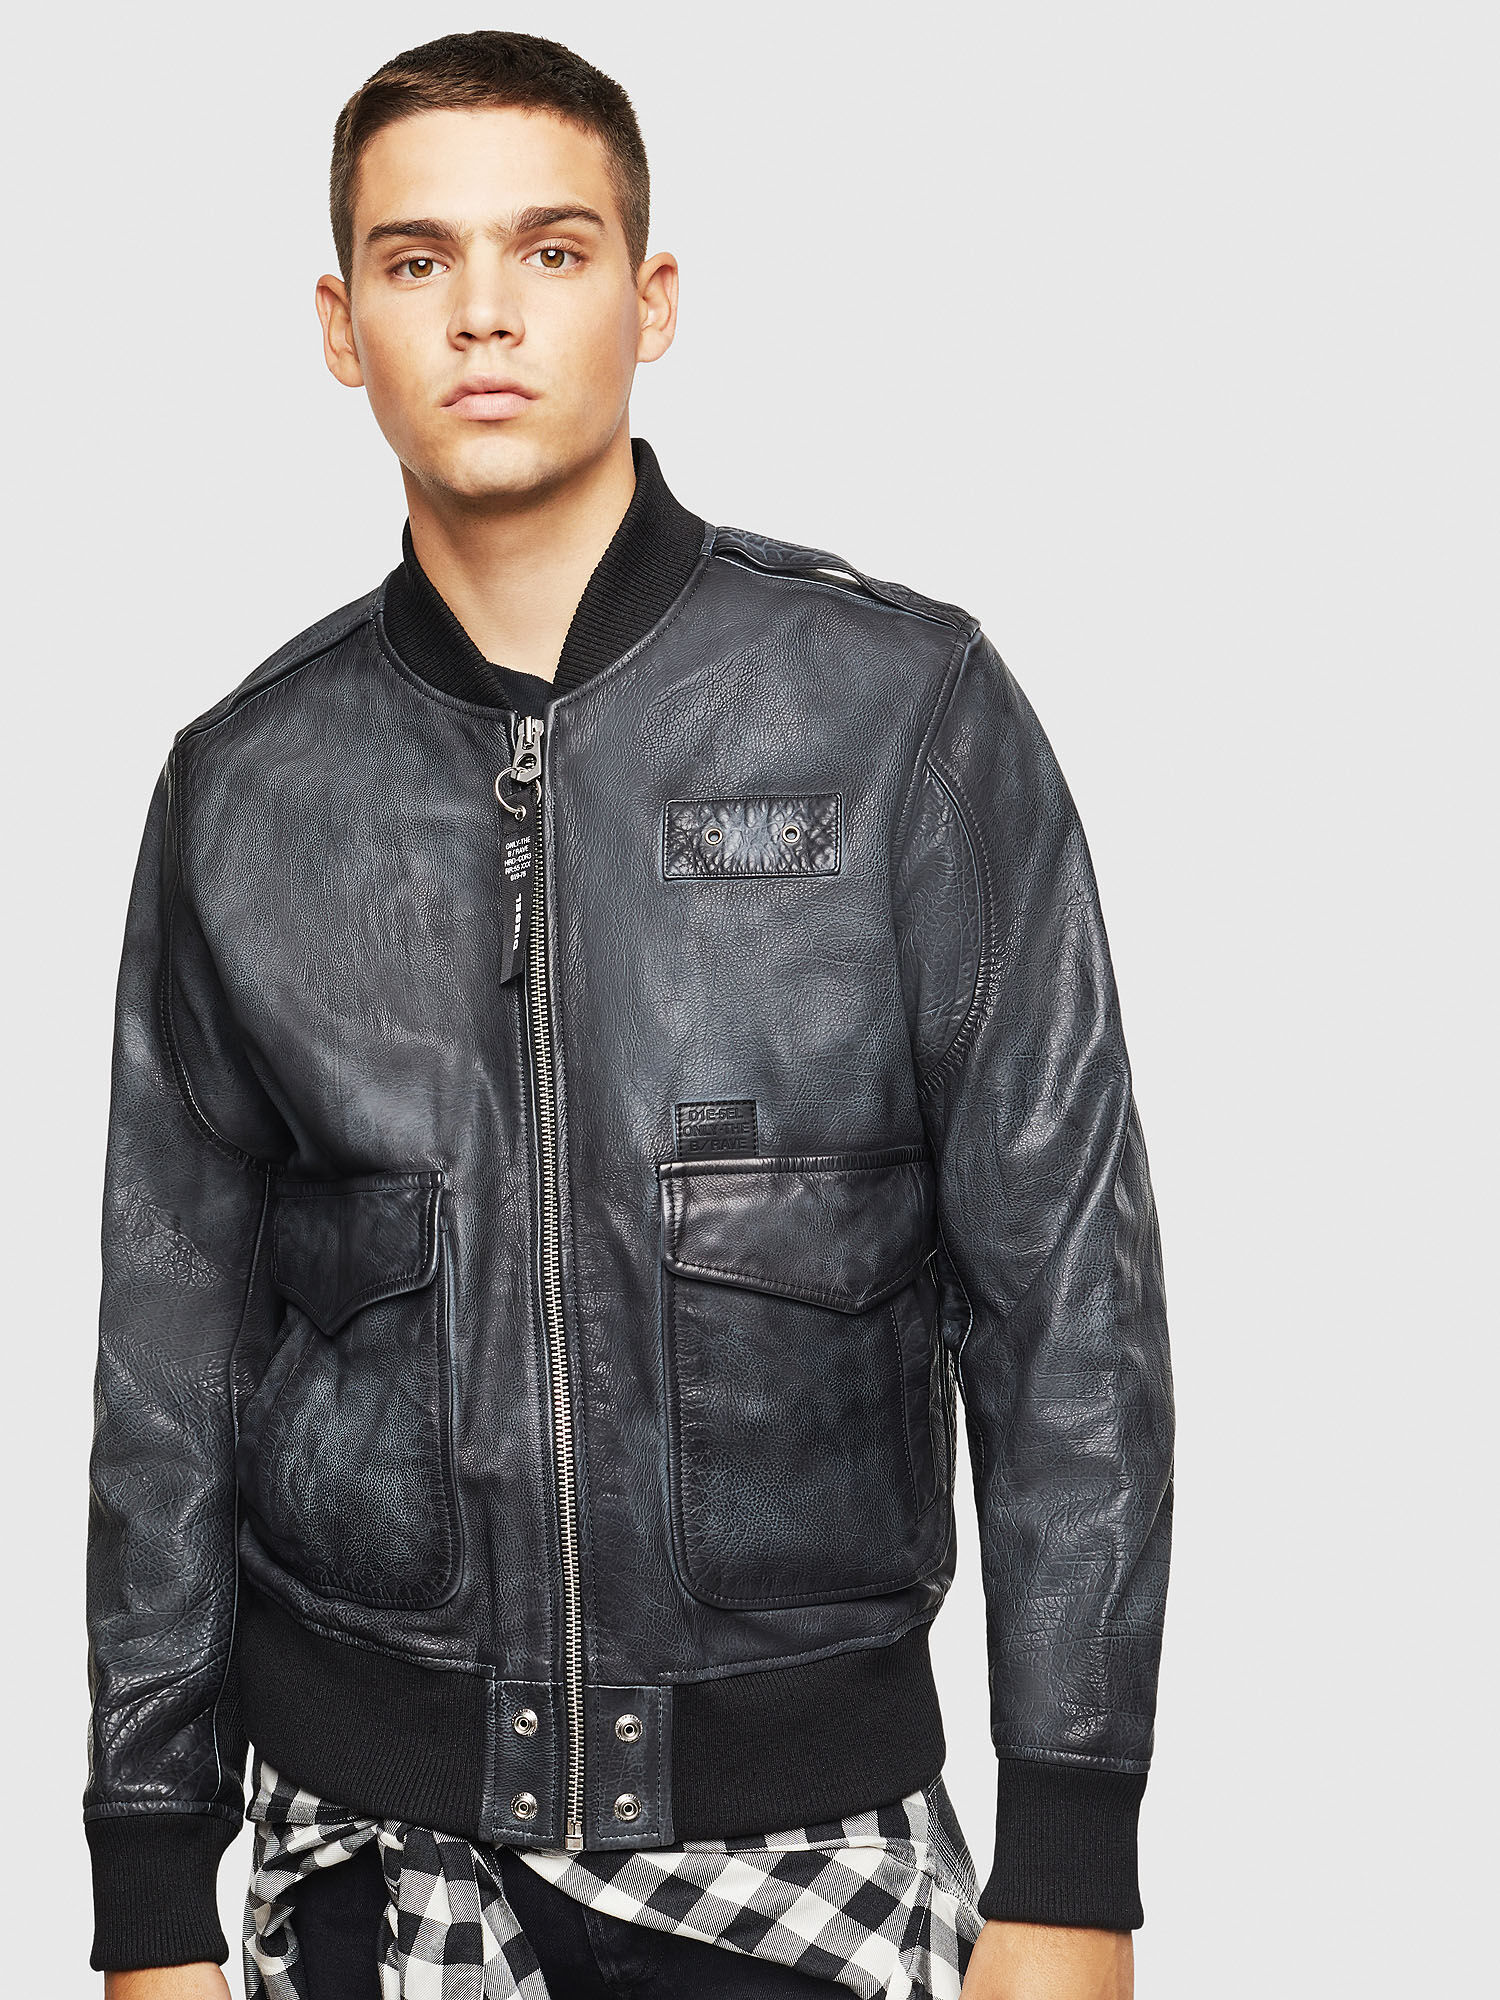 Aviator jacket in aged leather